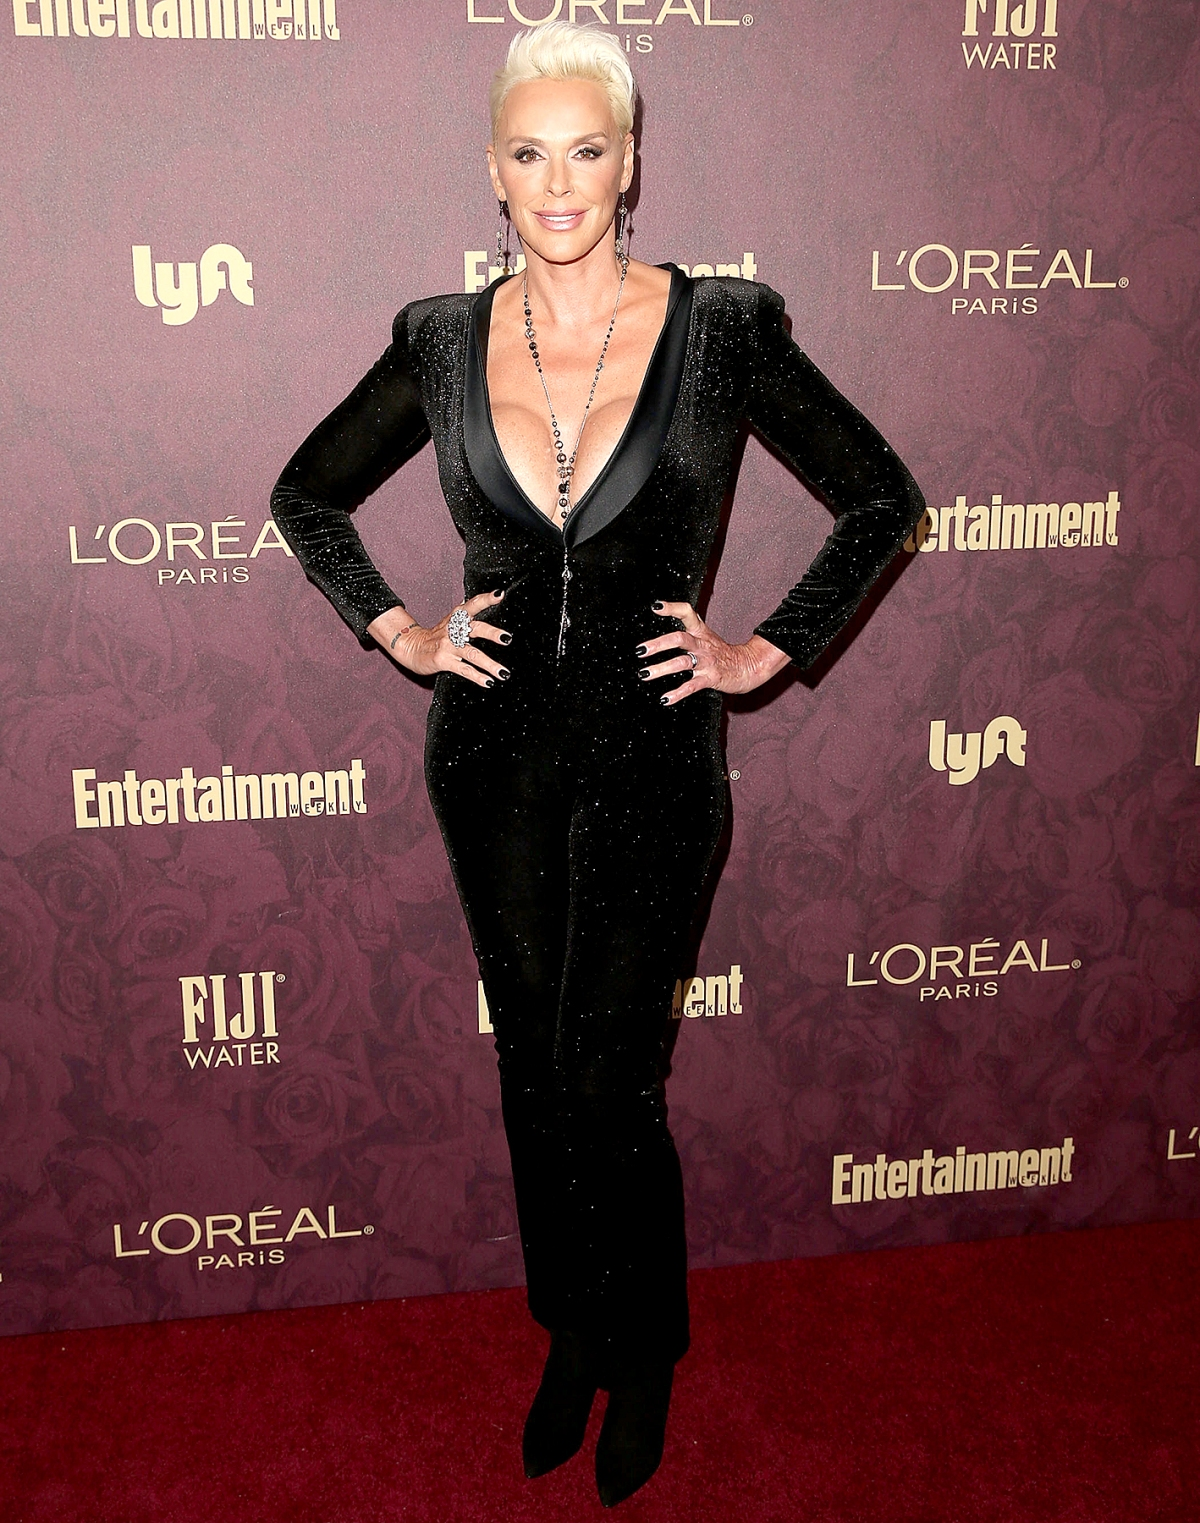 Brigitte Nielsen Inspiring Weight Loss Body After Baby At 55